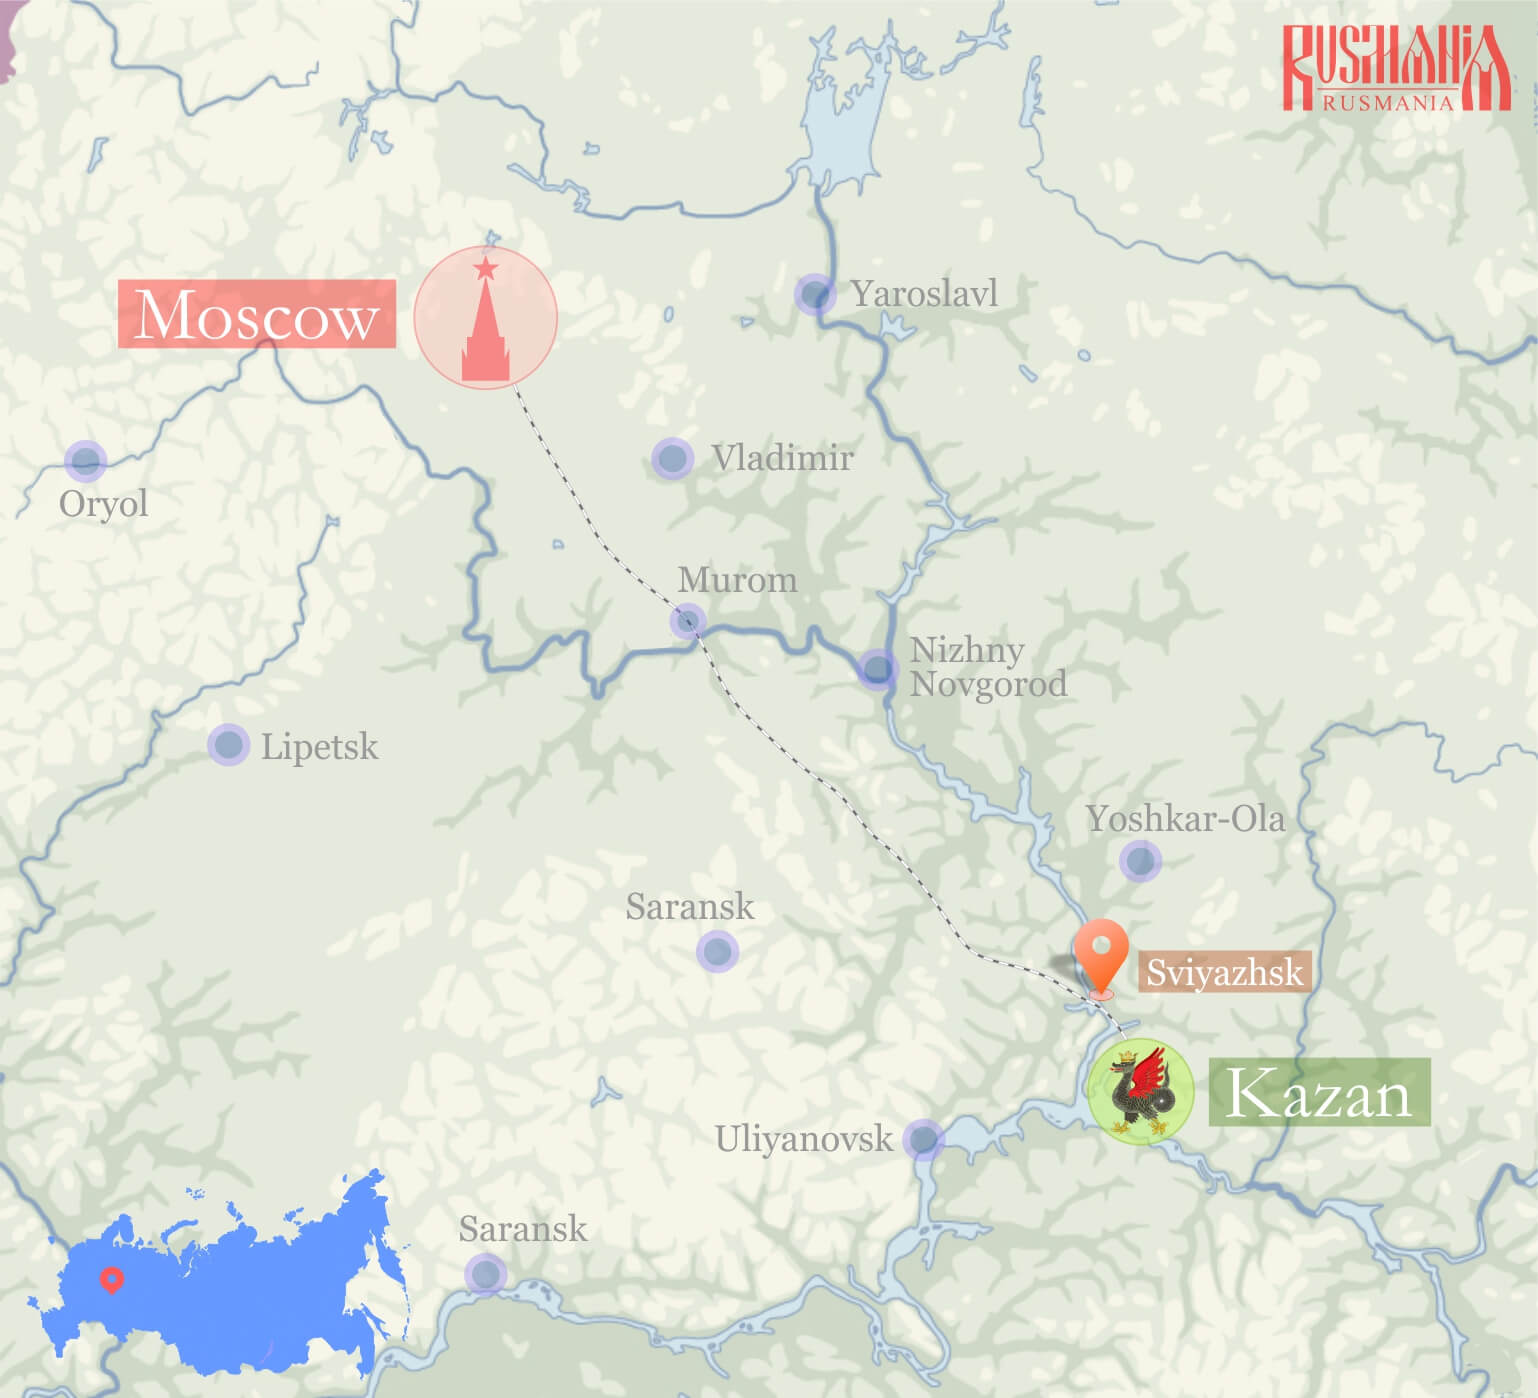 Weekend Tour To Kazan From Moscow Rusmania - Saransk map